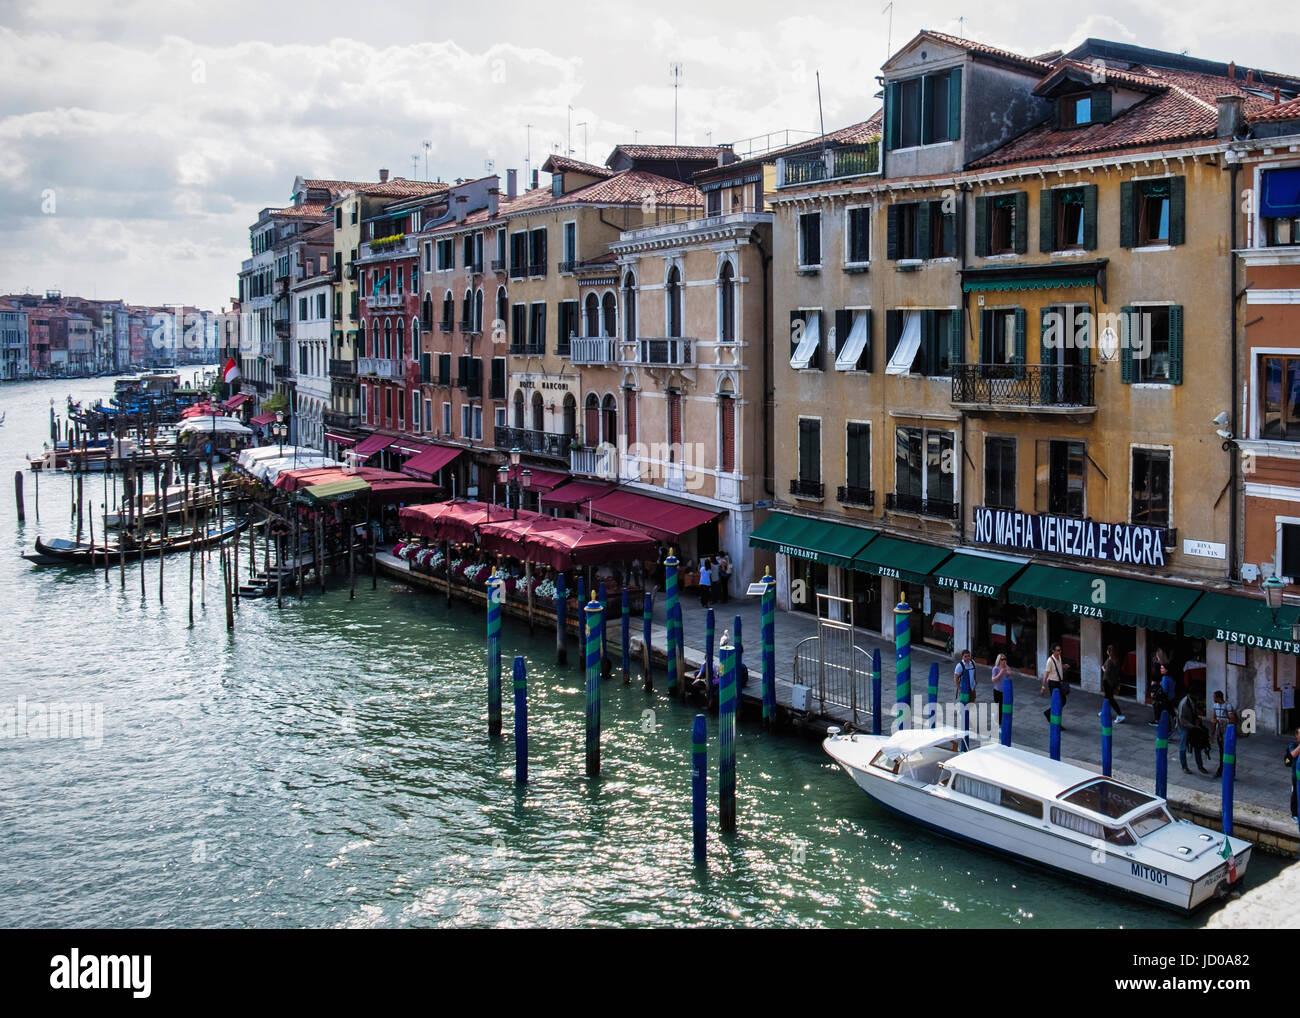 Venice, San Marco.Grand Canal, Typical Venetian landscape view with weathered houses and palazzos & 'No - Stock Image